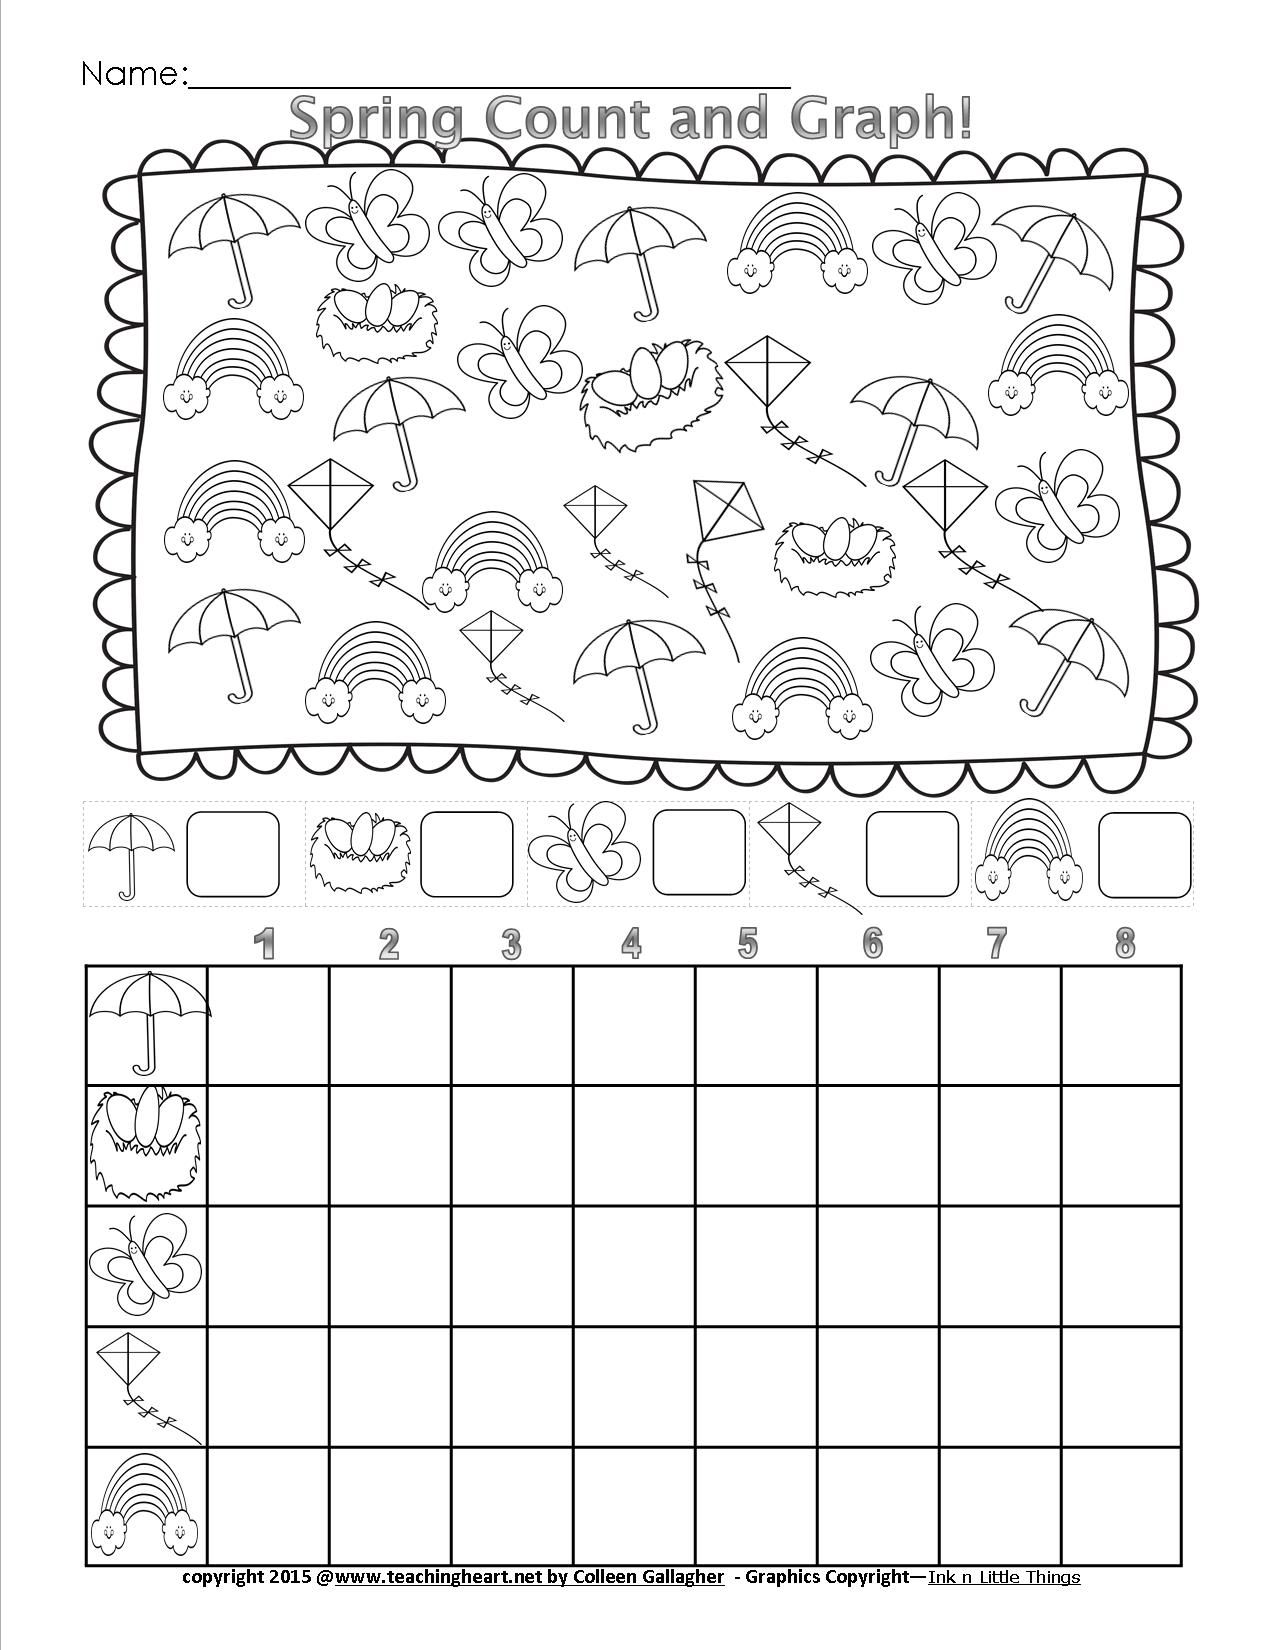 Worksheet Kindergarten Graphing 1000 images about graph worksheet on pinterest worksheets for kindergarten count and back to school worksheets